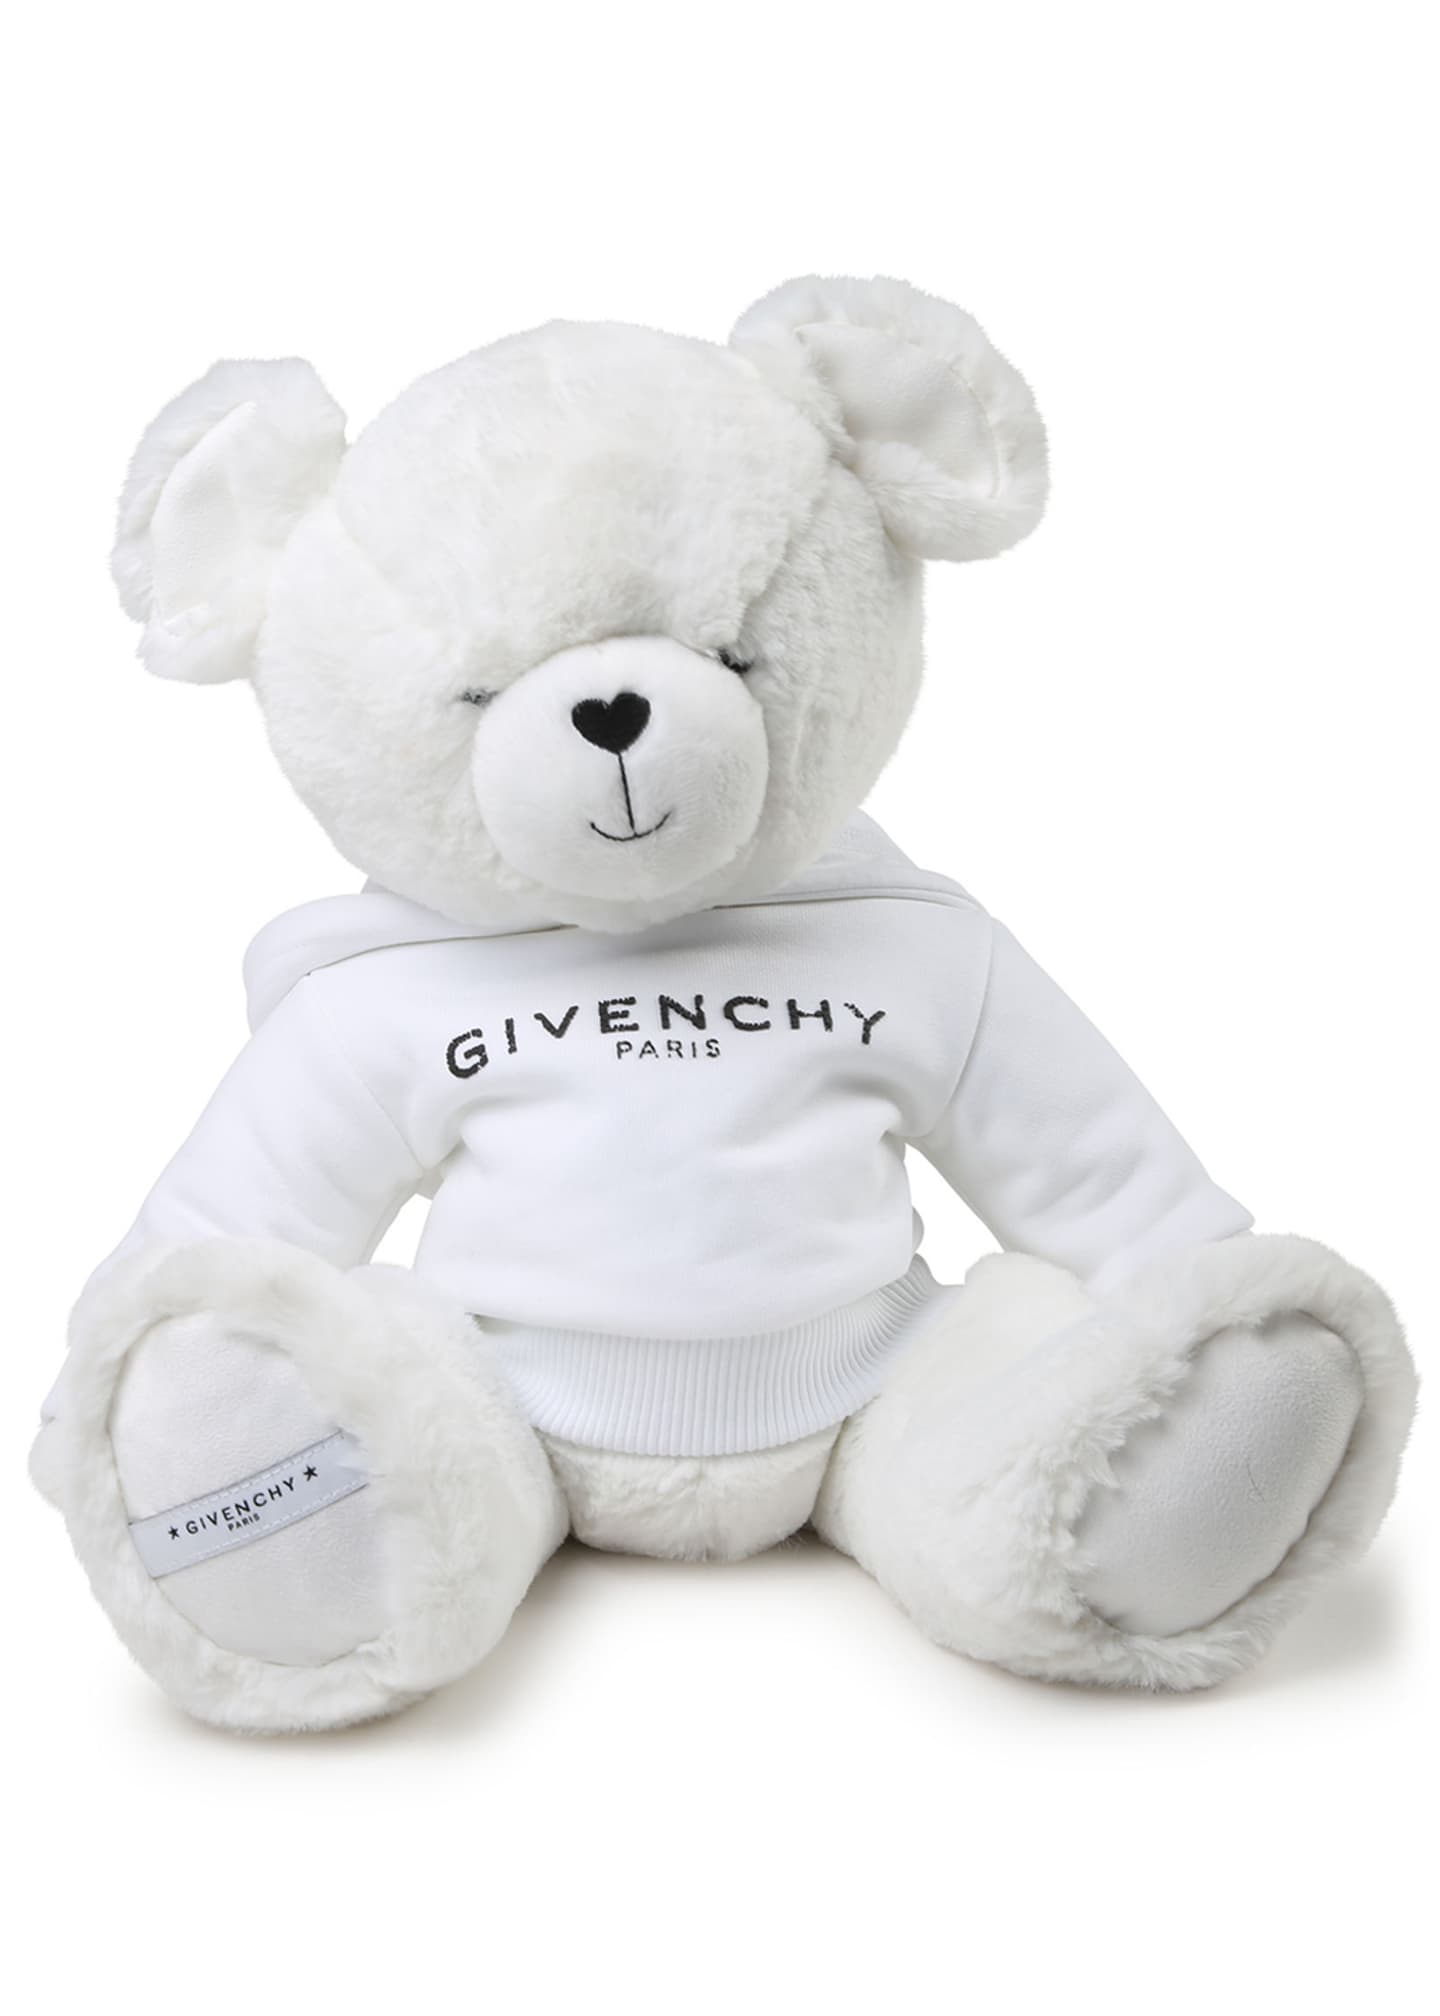 Givenchy Kids' Plush Teddy Bear Stuffed Animal w/